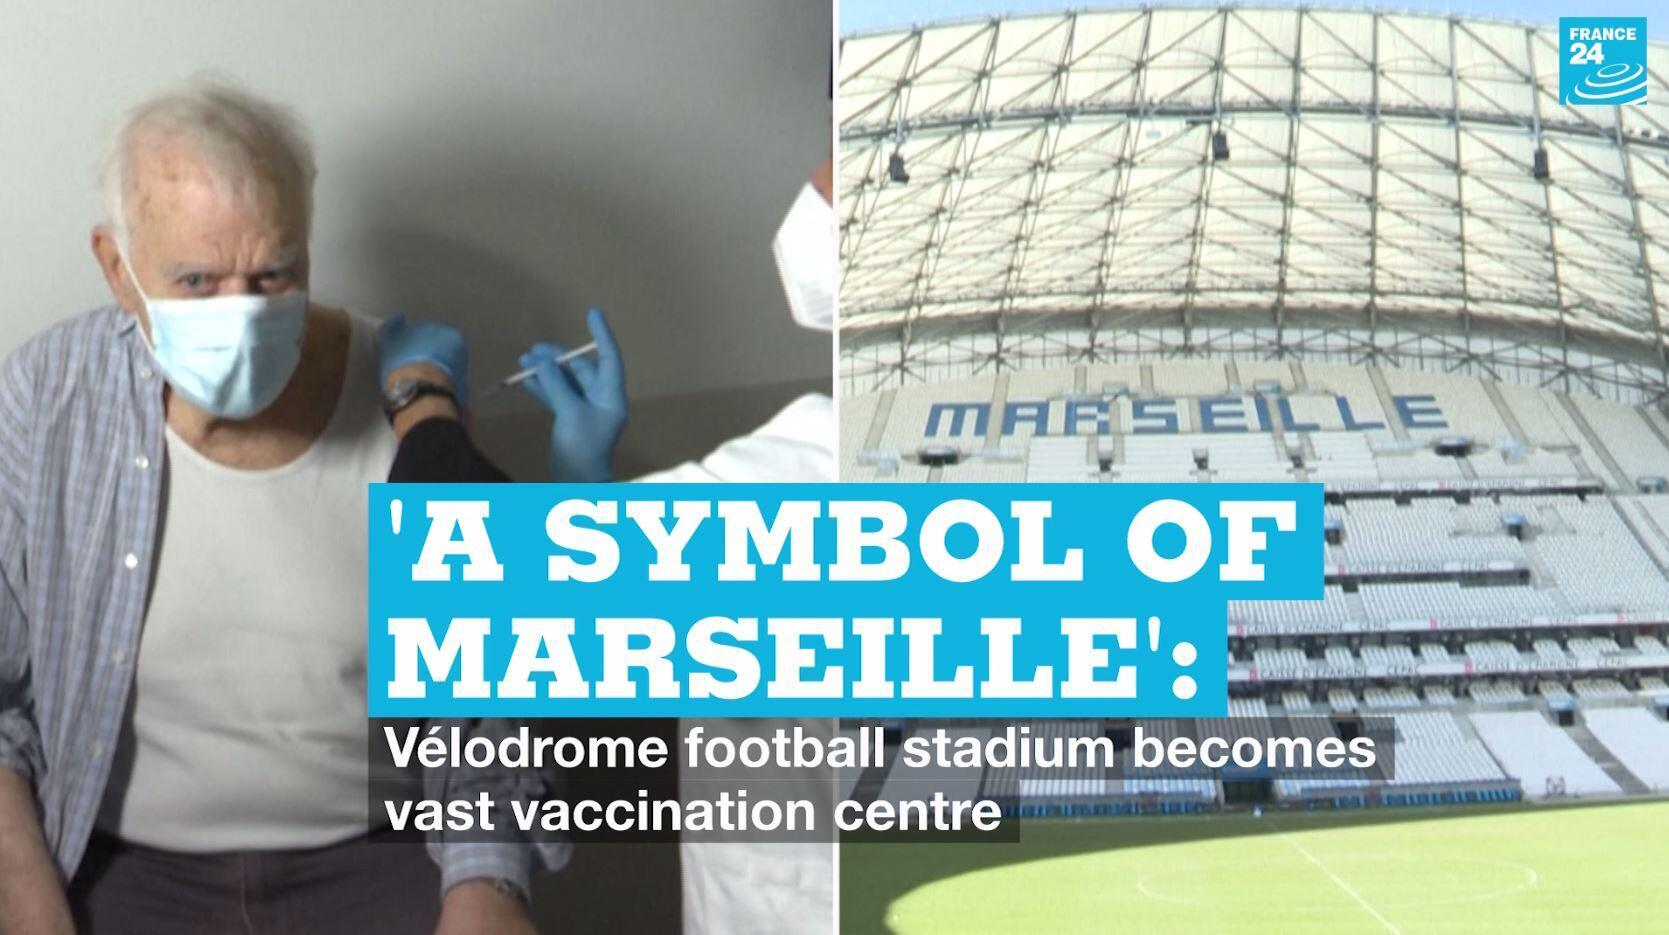 It is hoped up to 2,000 people a day will soon be able to get vaccinated against Covid-19 at a new vaccination centre inside  Marseille's Vélodrome stadium.